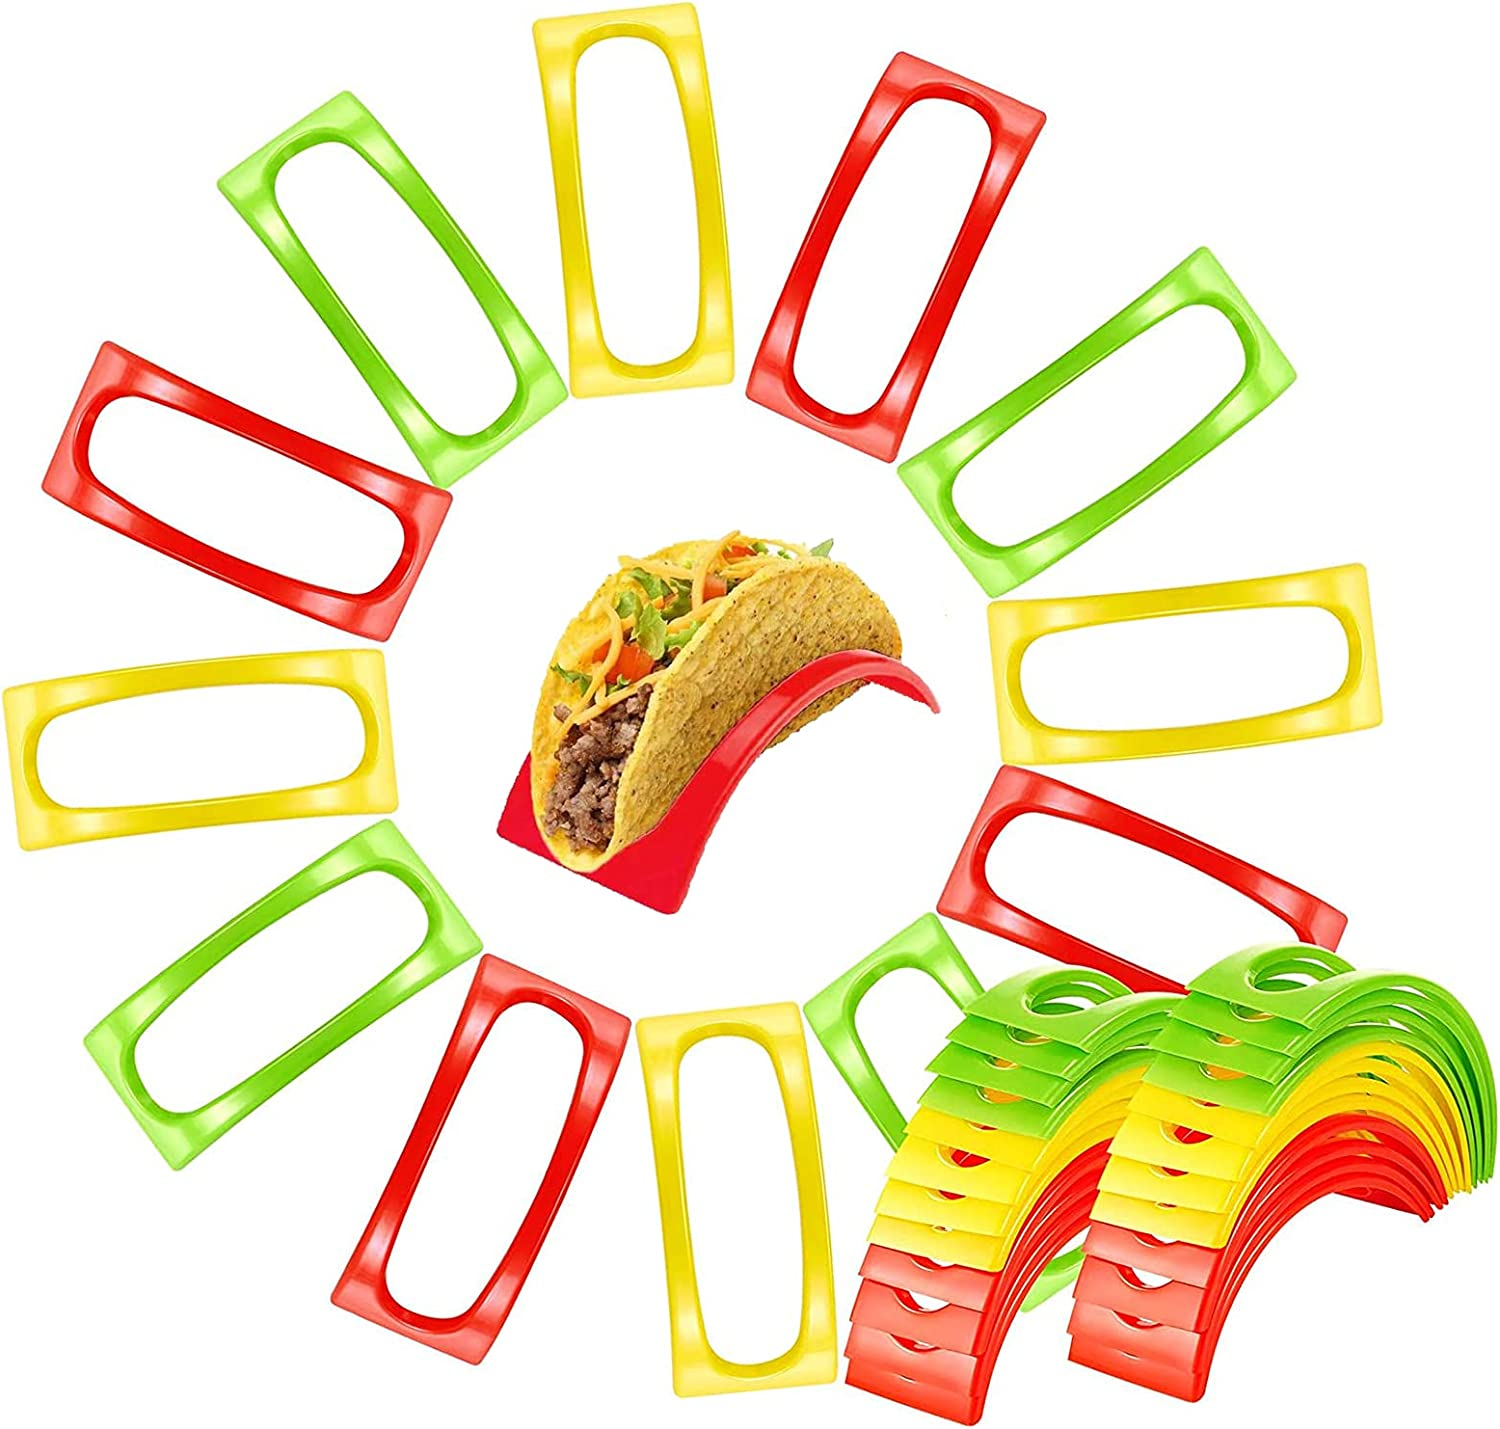 Set of 36 Taco Holders OFFicial shop - Colorful supreme BPA Non Free S Toxic Microwave